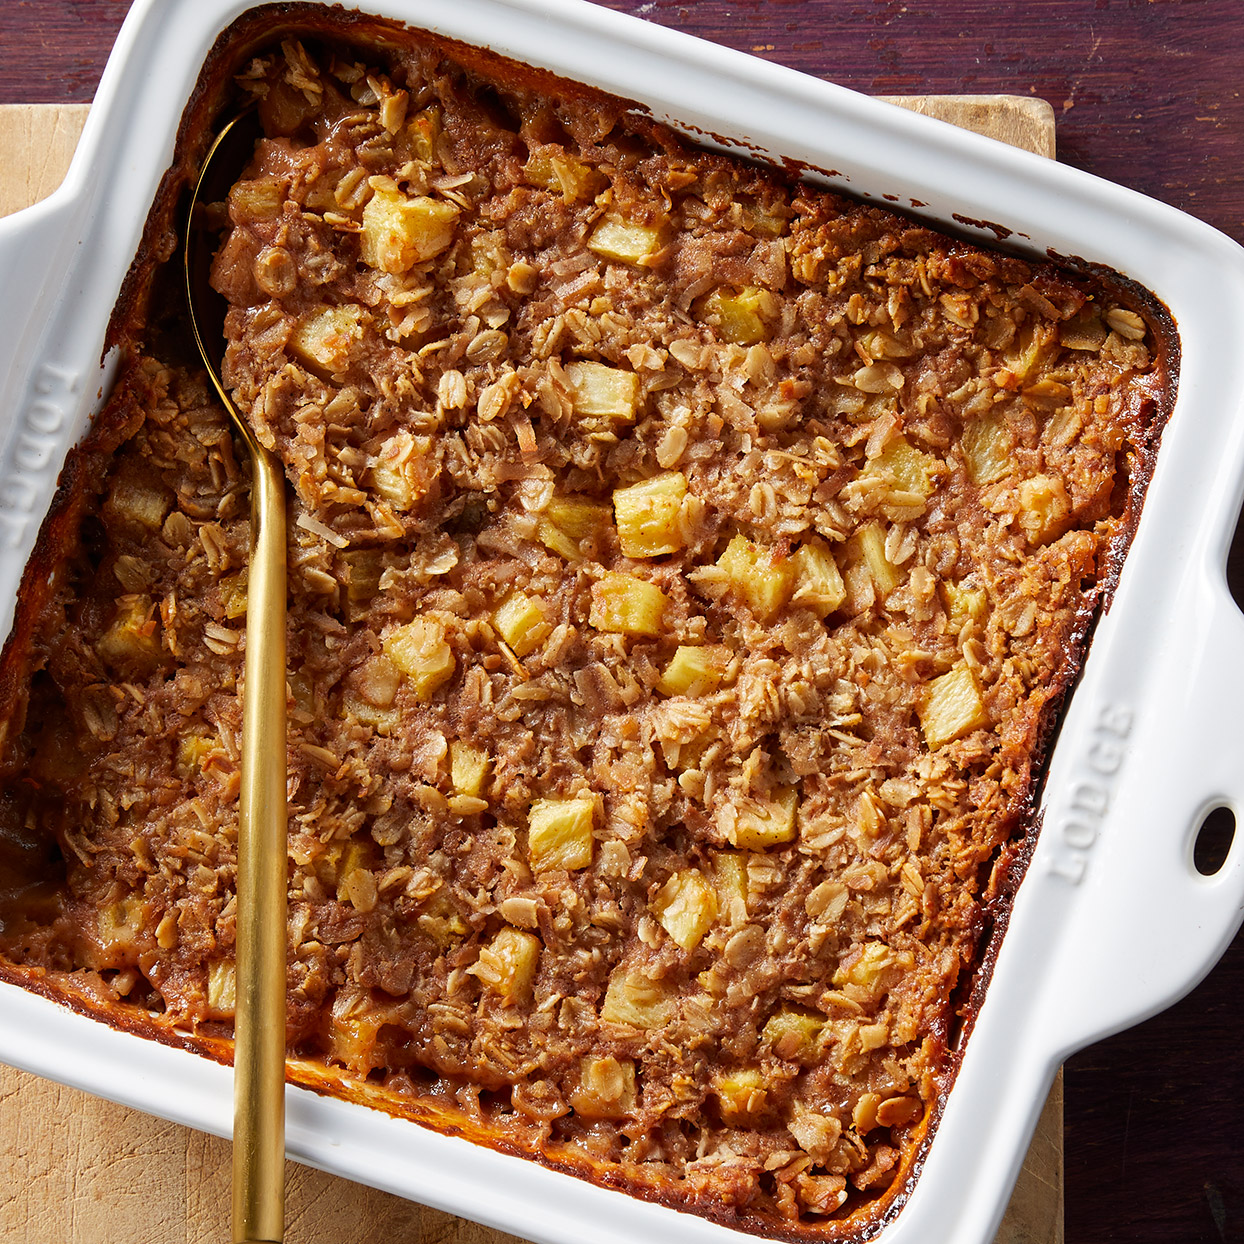 This dreamy vegan baked oatmeal is full of tropical flavors from coconut and pineapple, and it couldn't be easier to make. It's a satisfying family breakfast but also feels special enough for a Sunday brunch with company. Source: EatingWell.com, February 2020